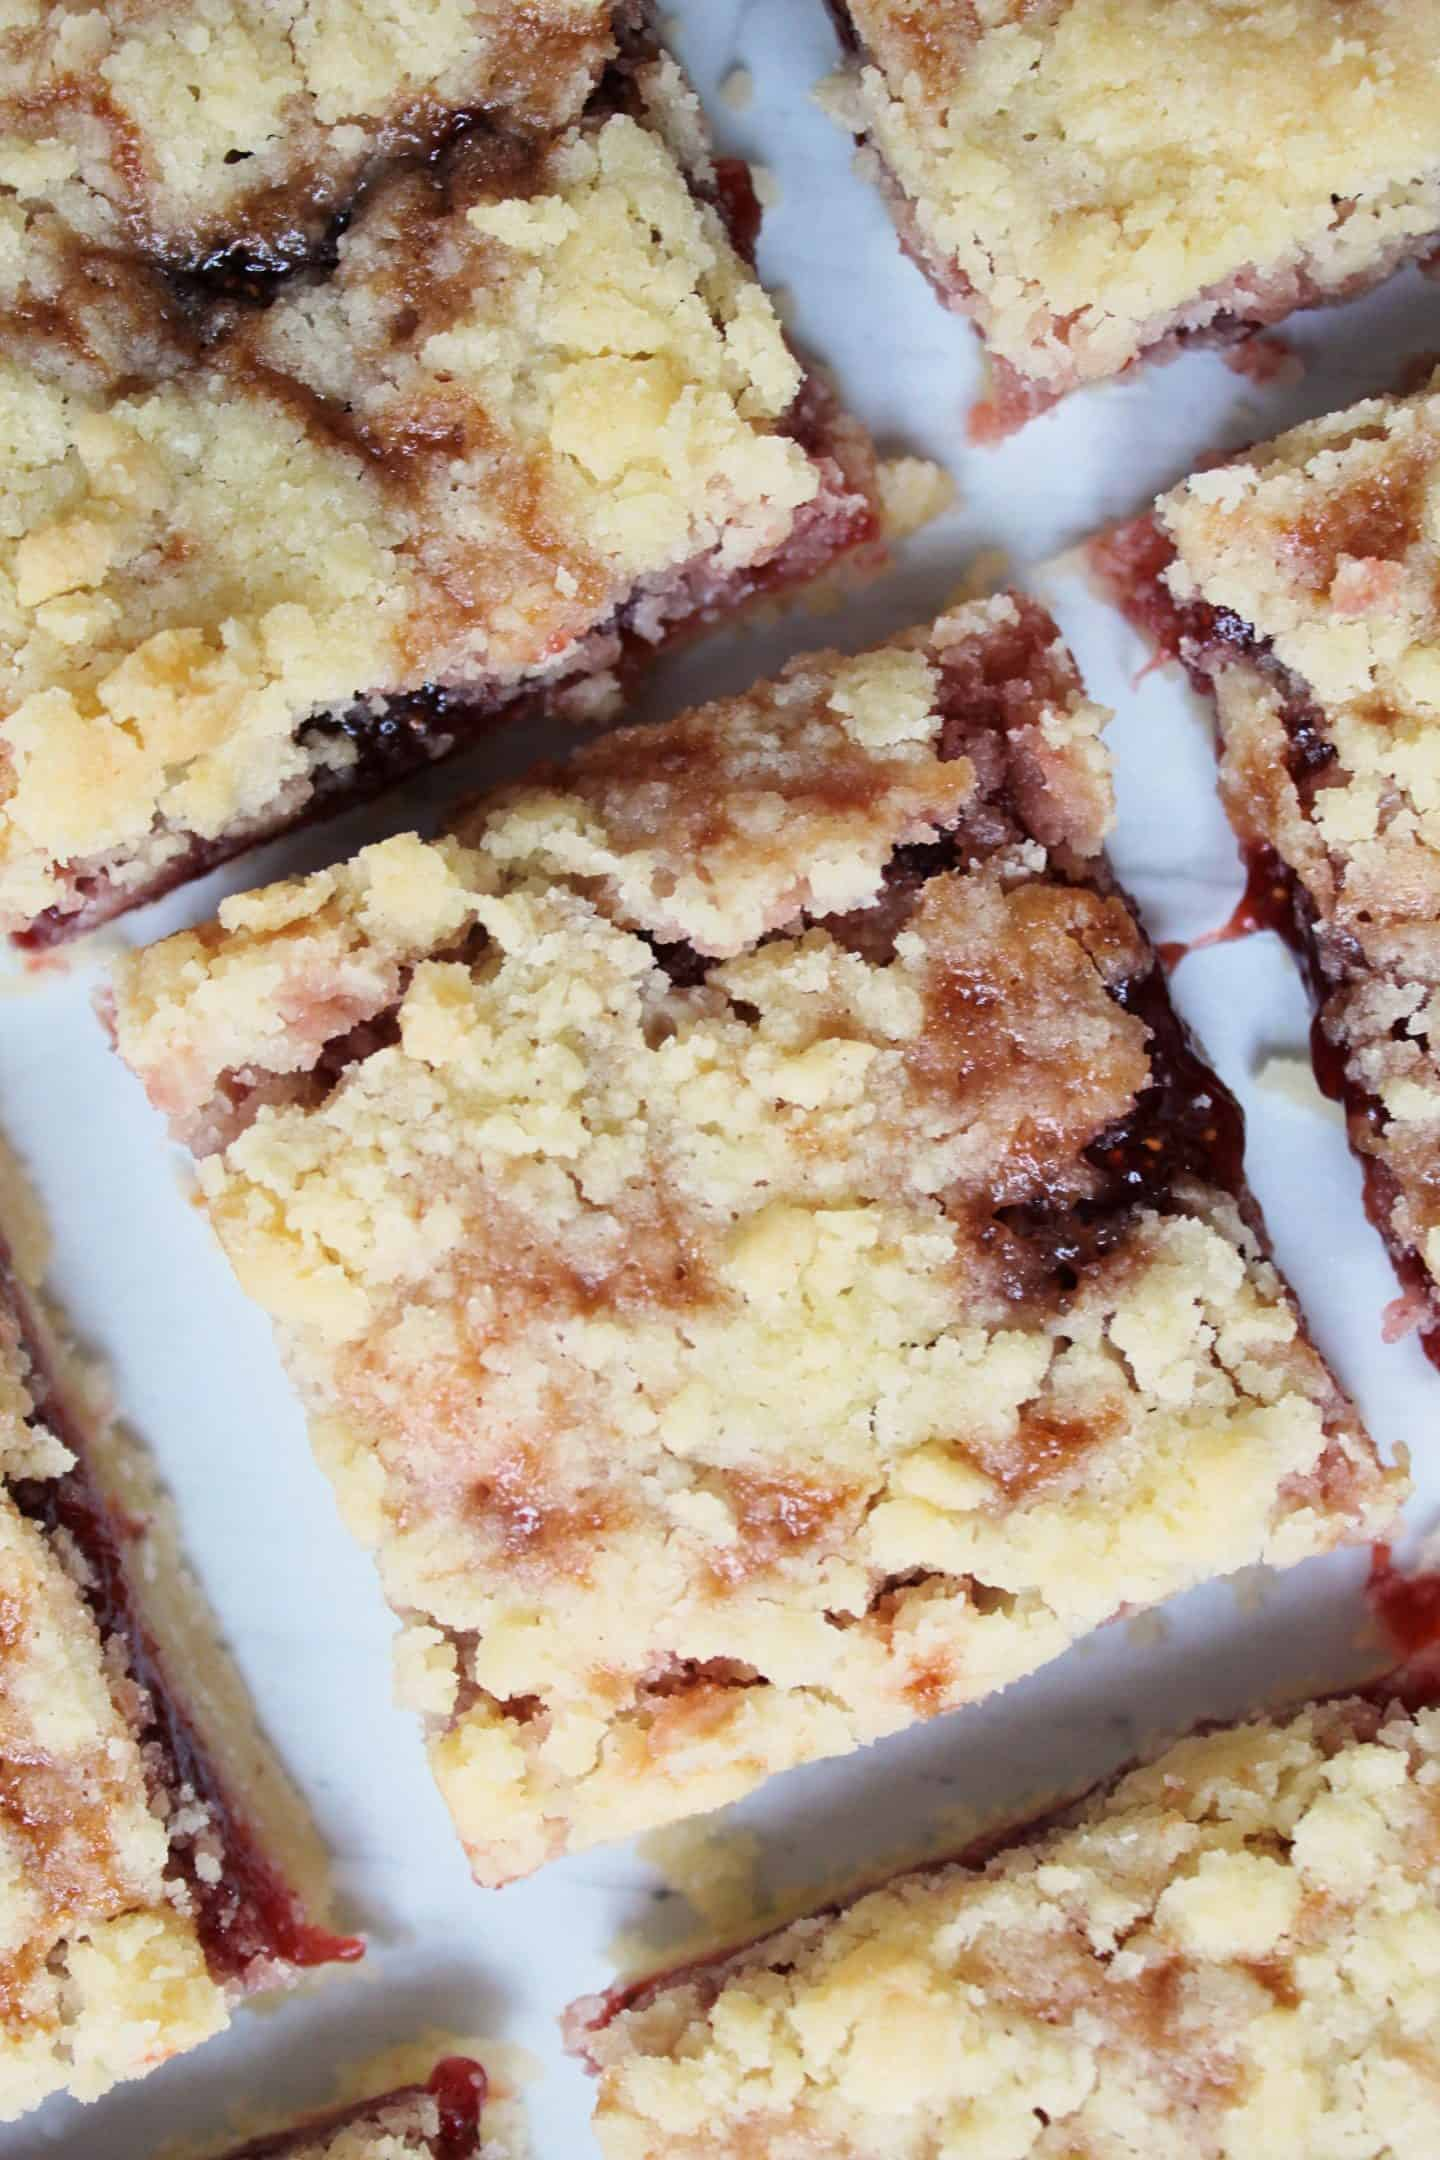 gluten free strawberry crumble bars